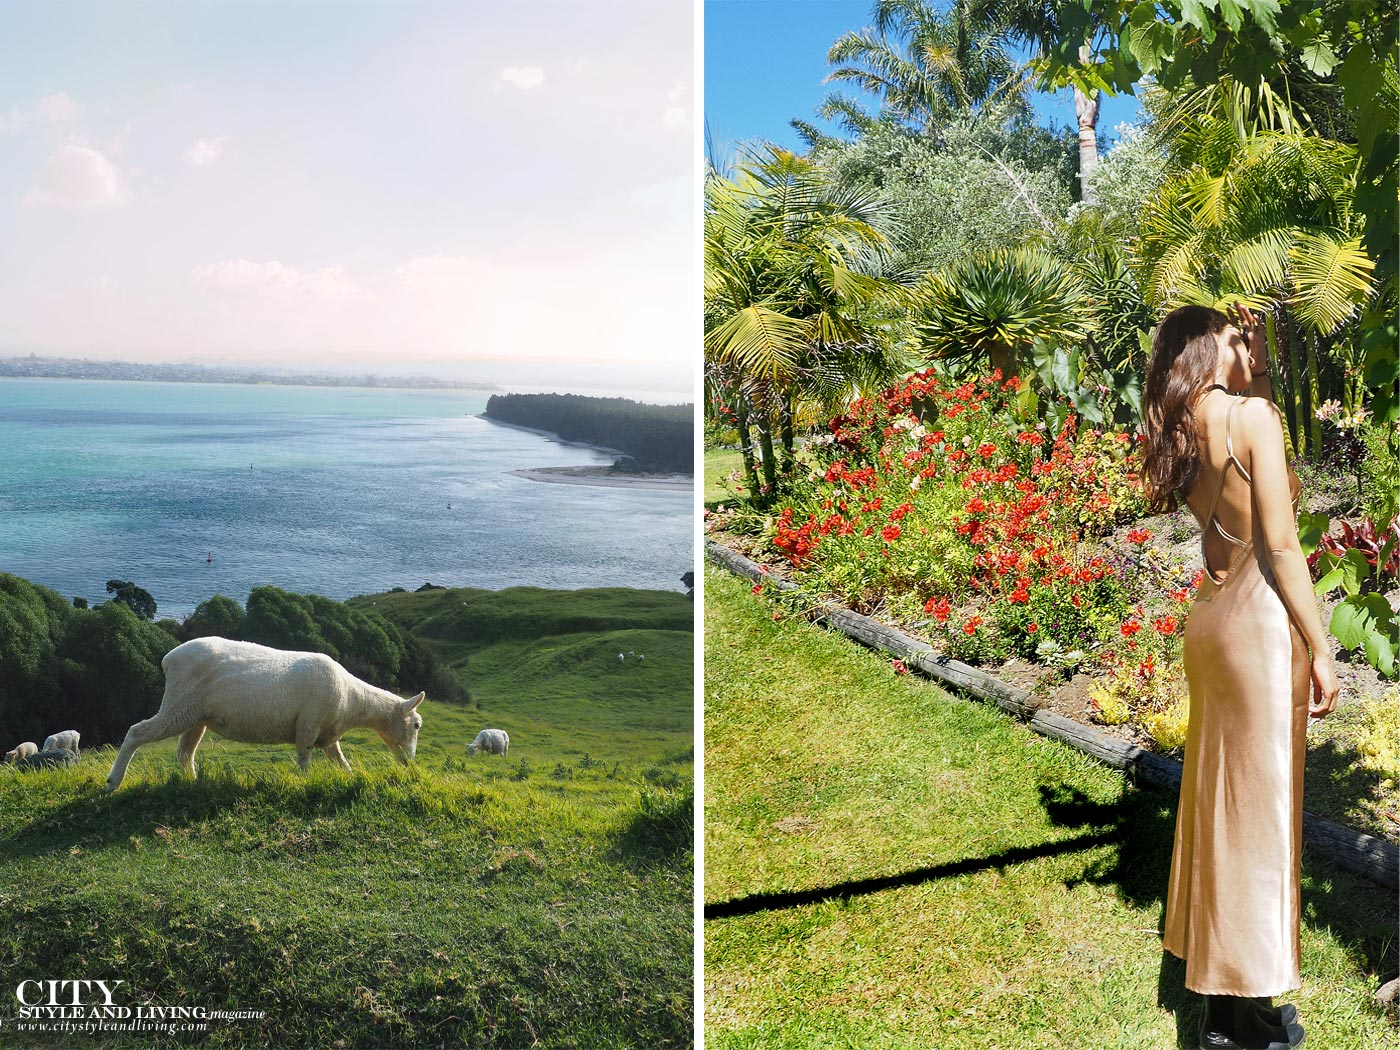 City style and living magazine Editors Notebook style fashion blogger Shivana M sheep eating grass overlooking the ocean and gold dress at mercury bay winery garden new zealand